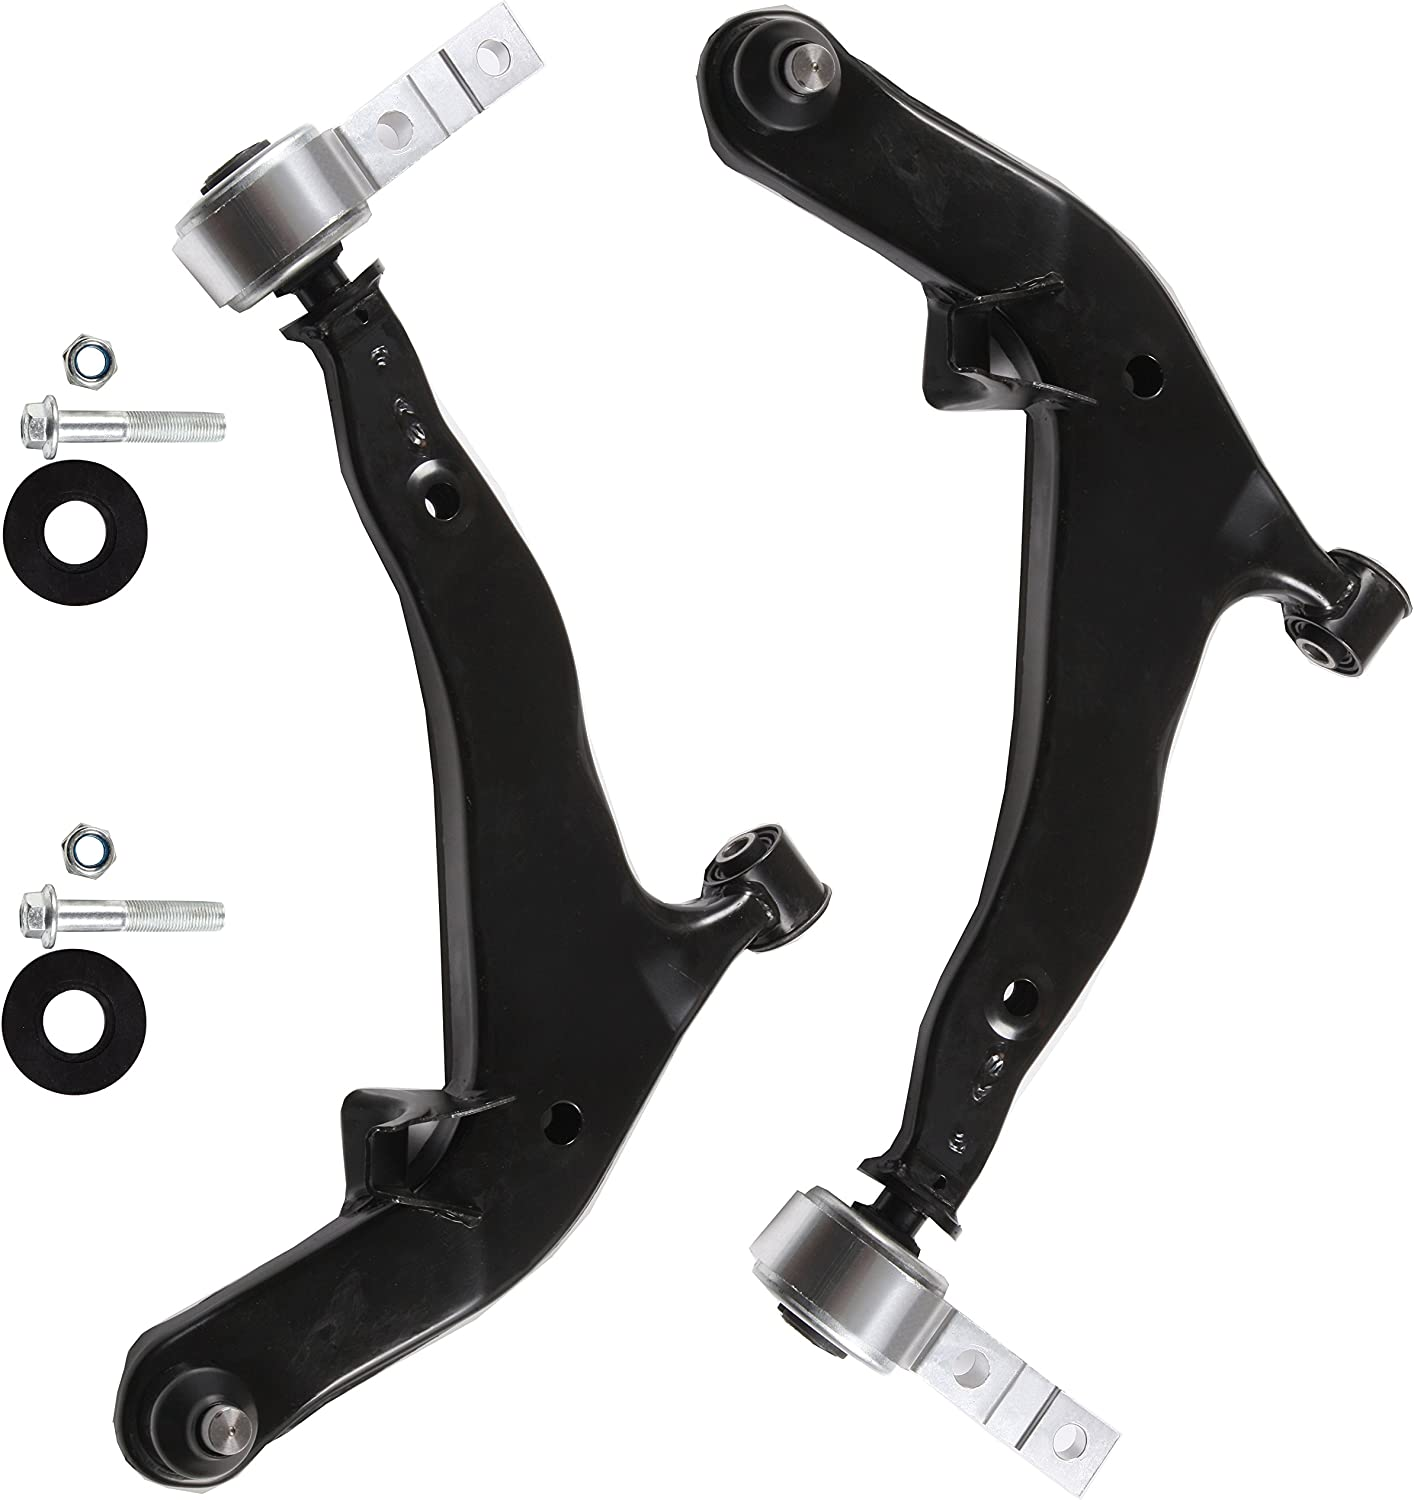 2003-2007 MURANO FRONT LOWER CONTROL ARMS WITH BALL JOINTS